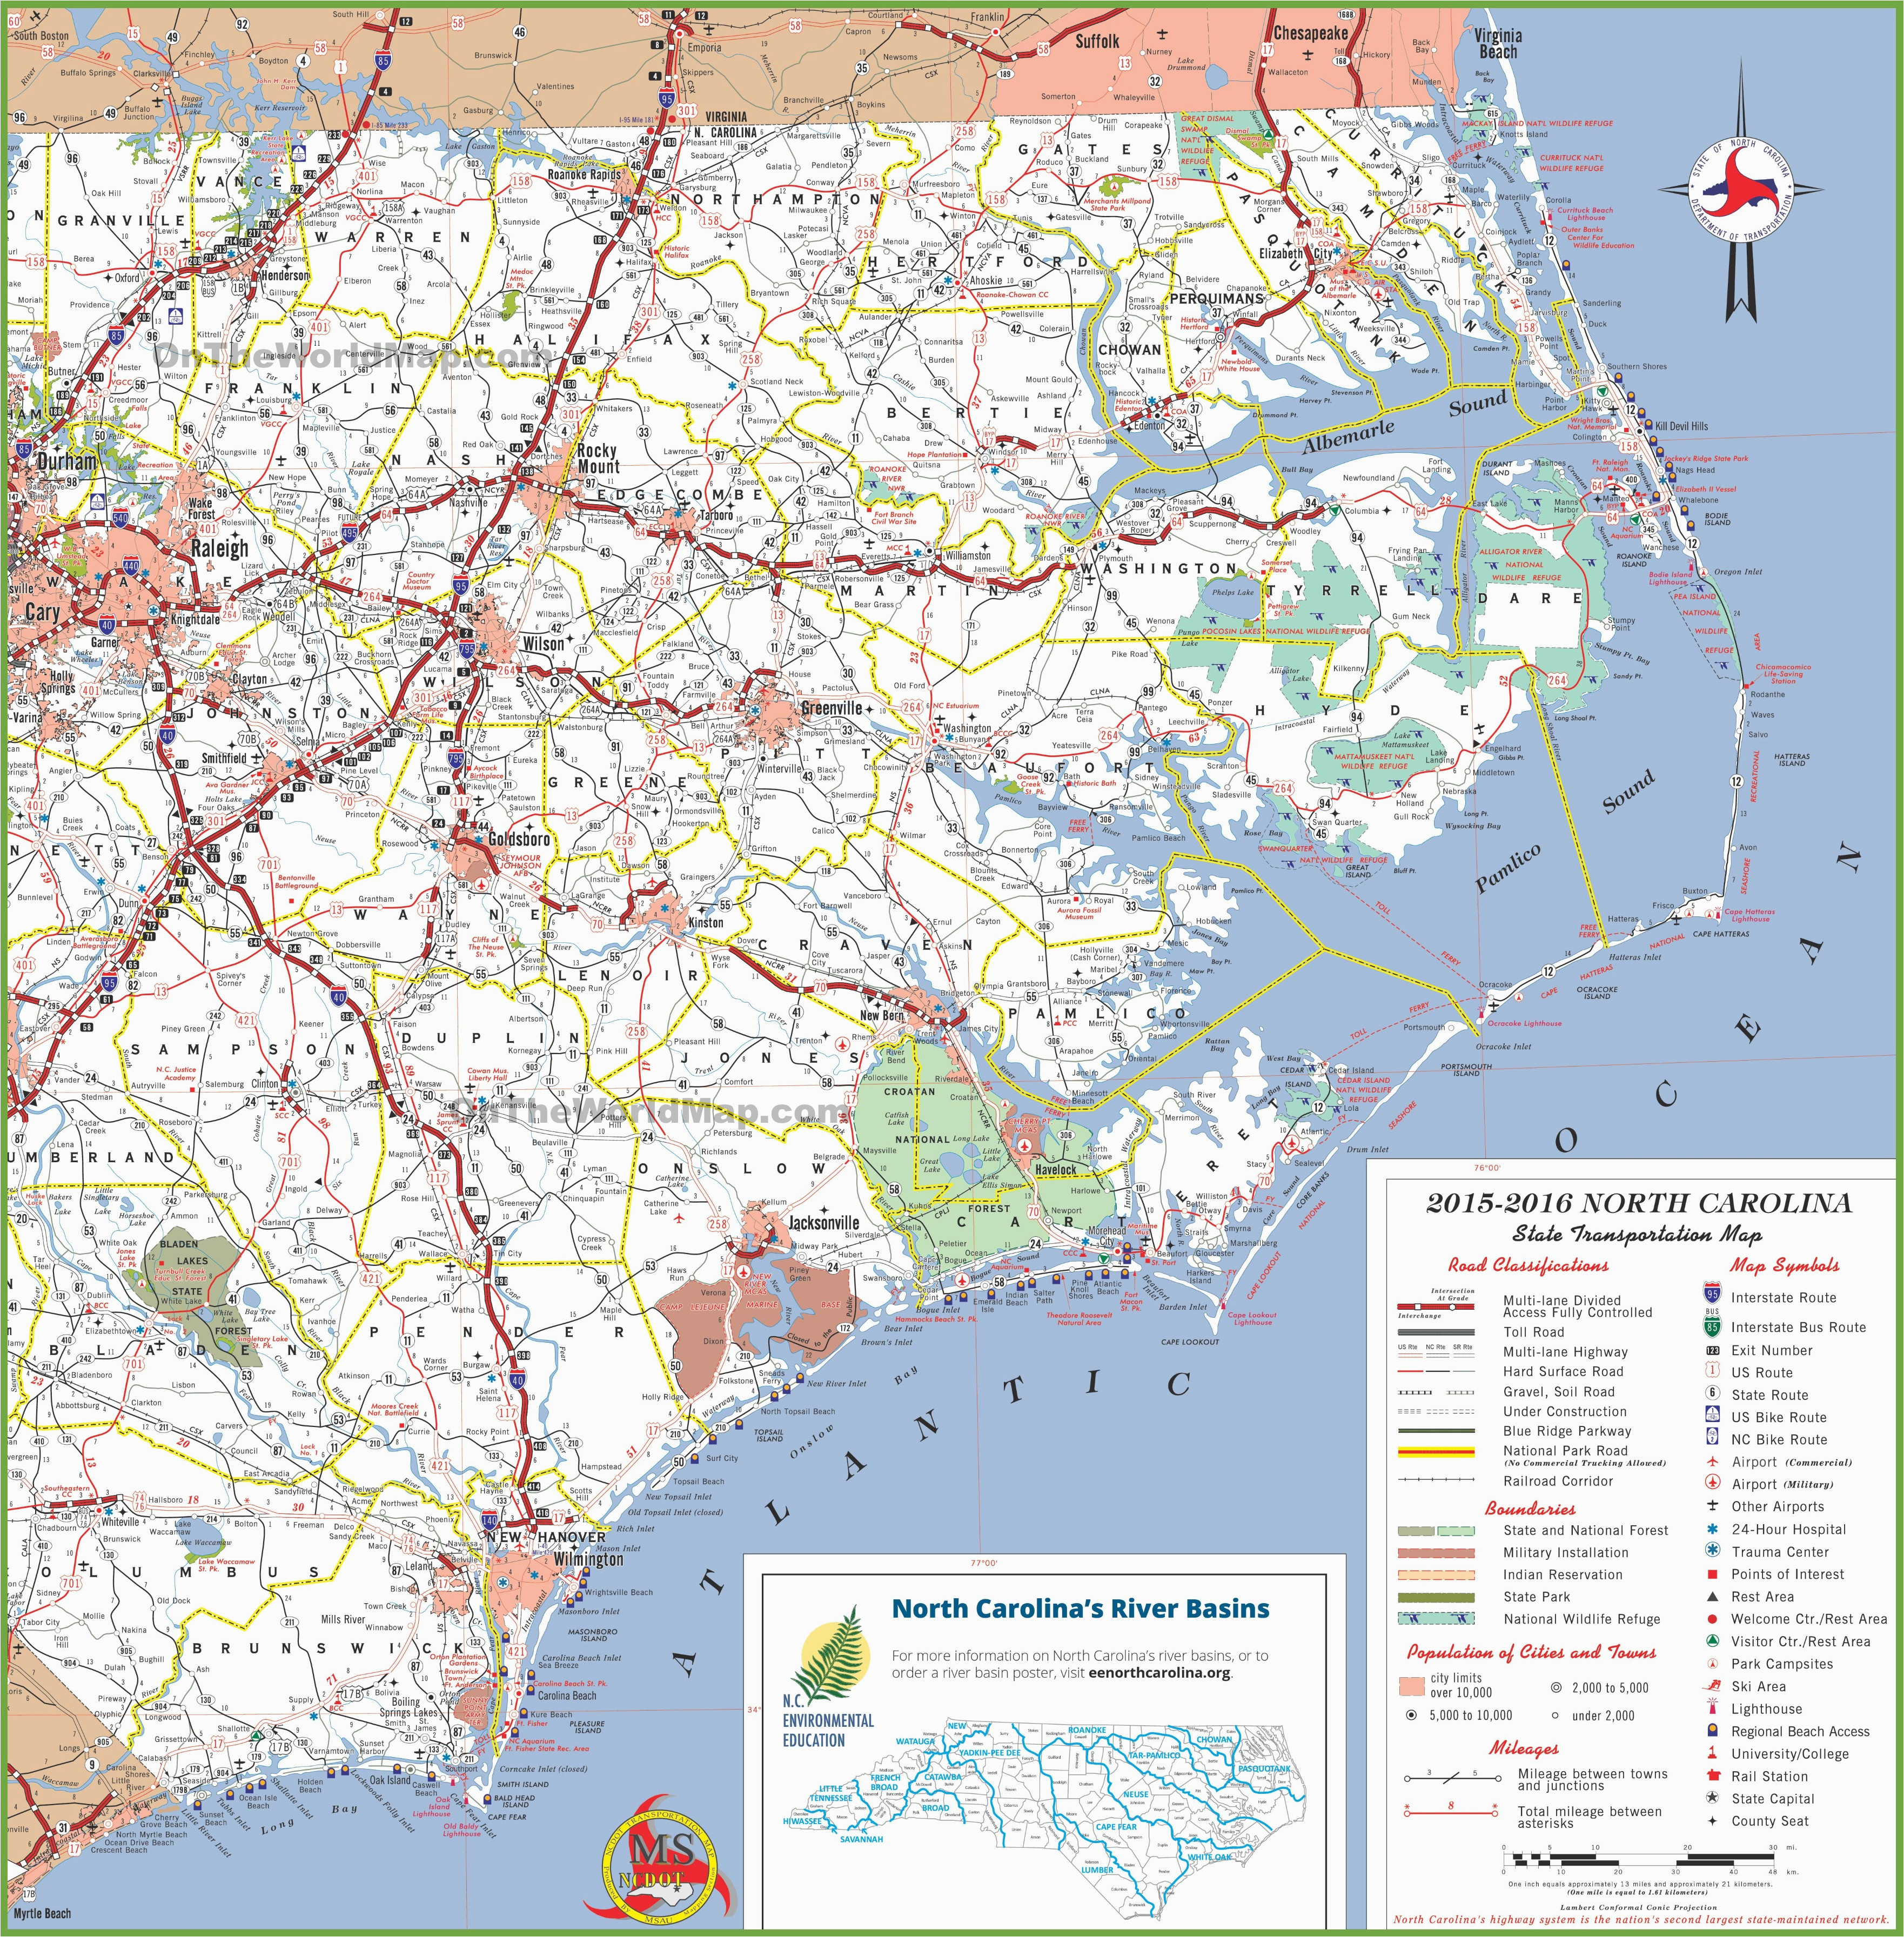 State Map Of North Carolina With Cities.North Carolina Coastal Map With Cities Secretmuseum